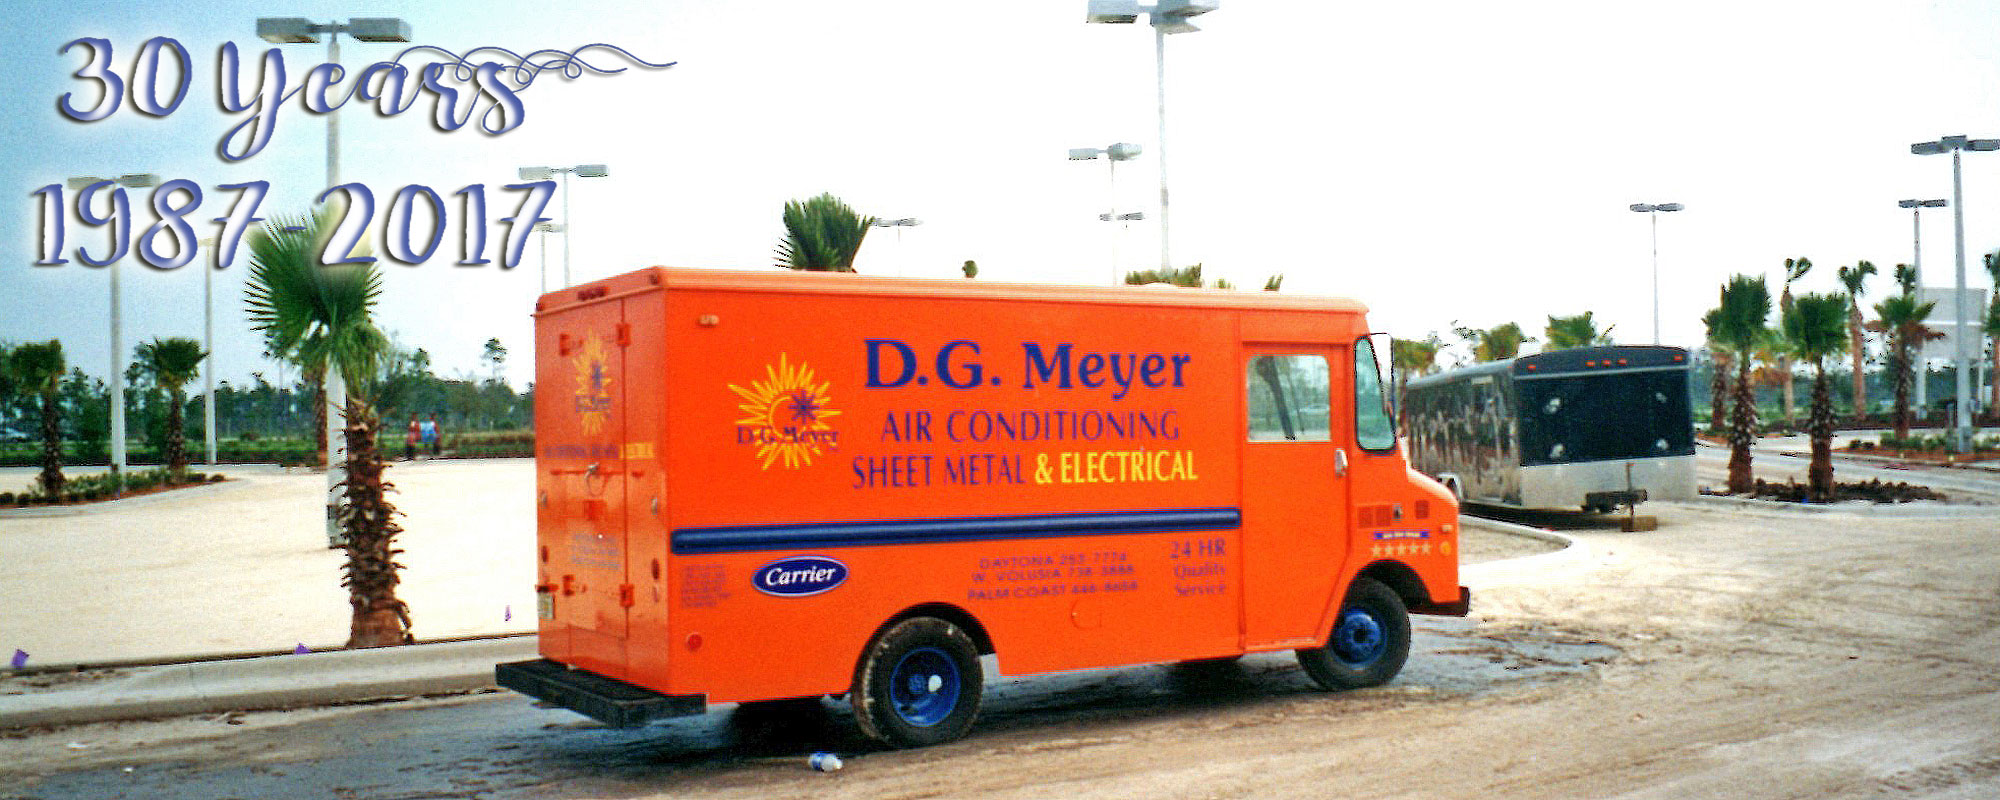 30 Years D.G. Meyer Inc. 1987-2017